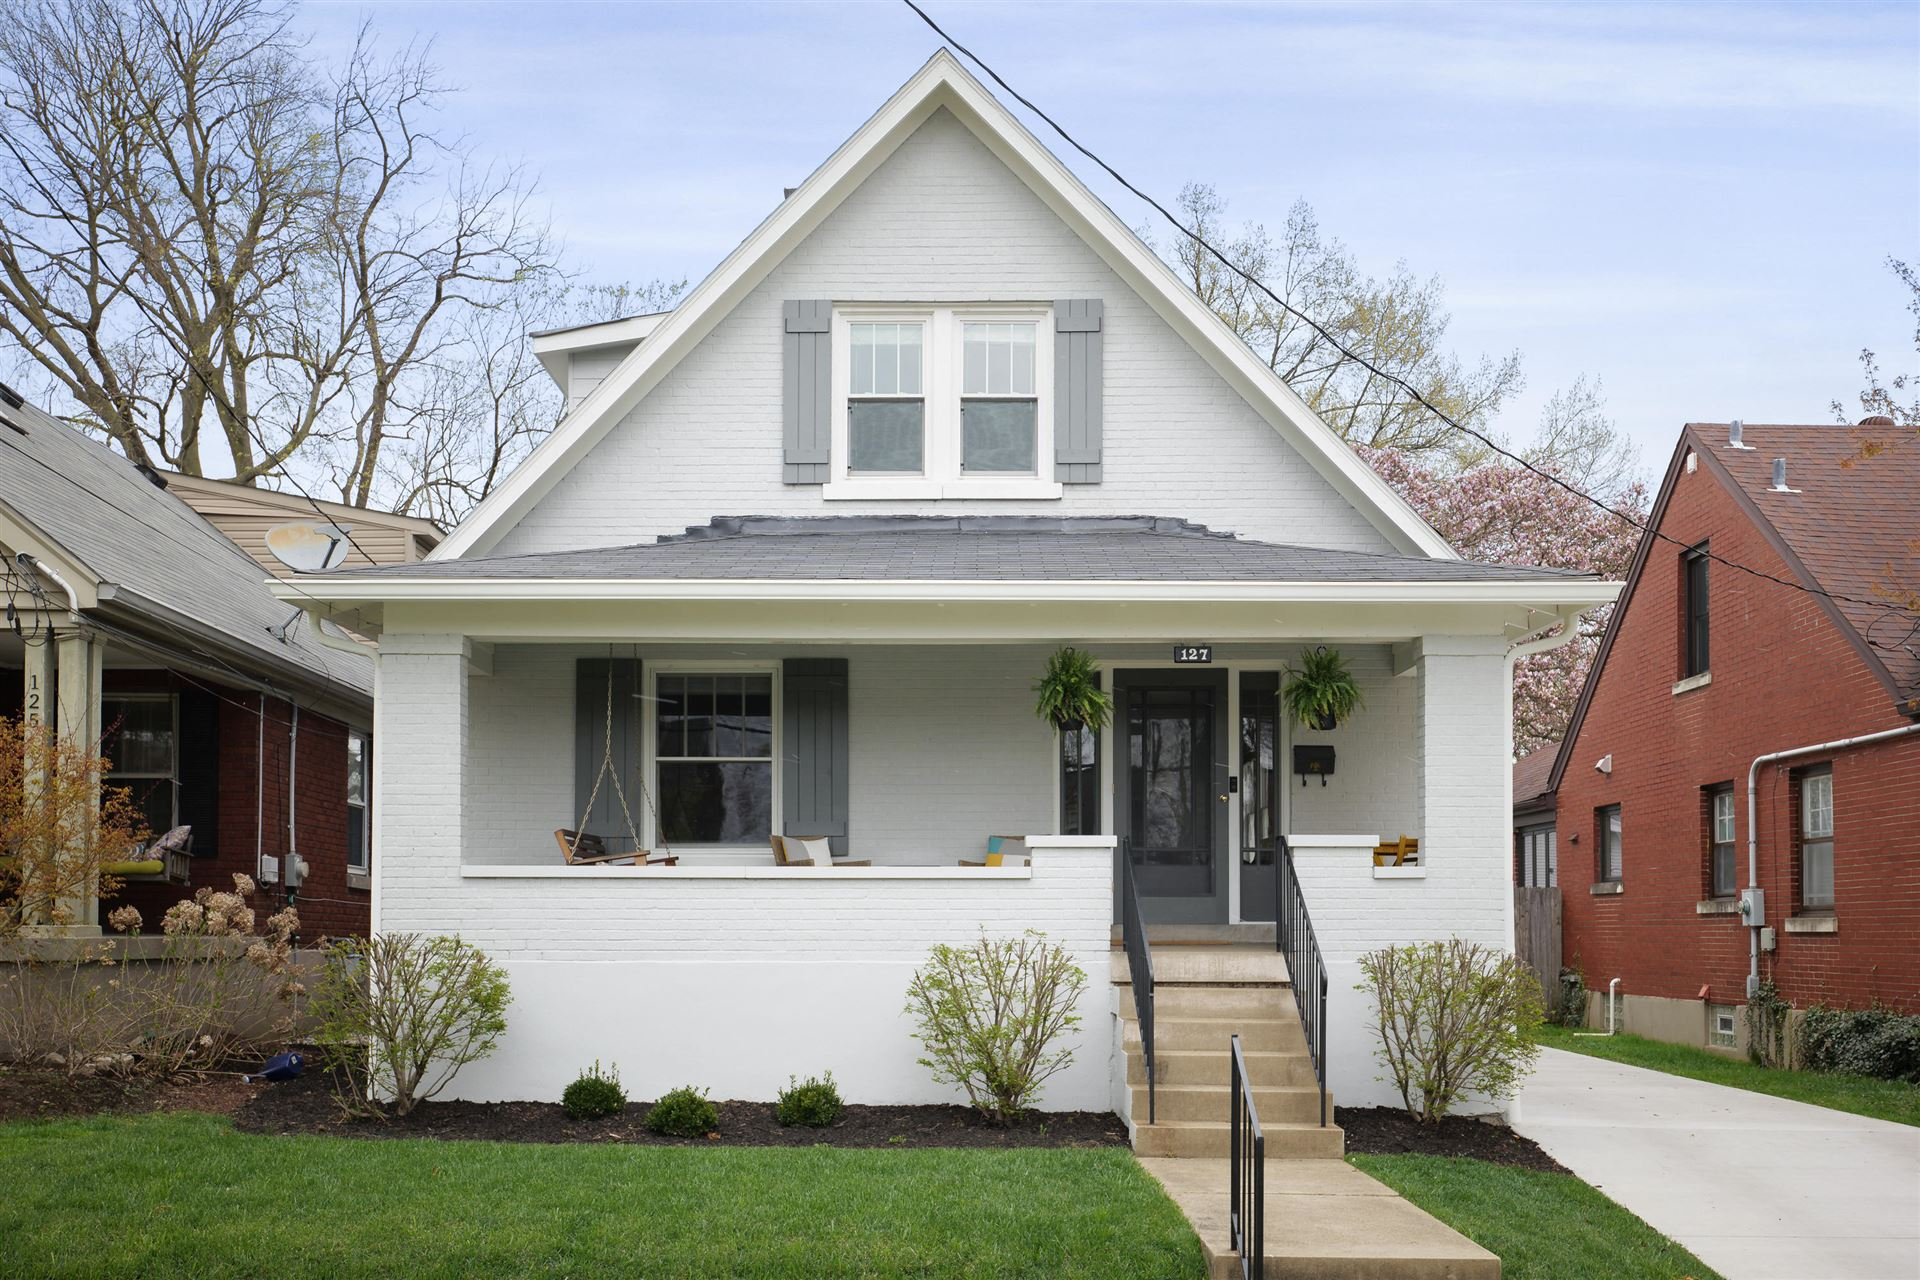 Photo for 127 S Crestmoor Ave, Louisville, KY 40206 (MLS # 1582754)